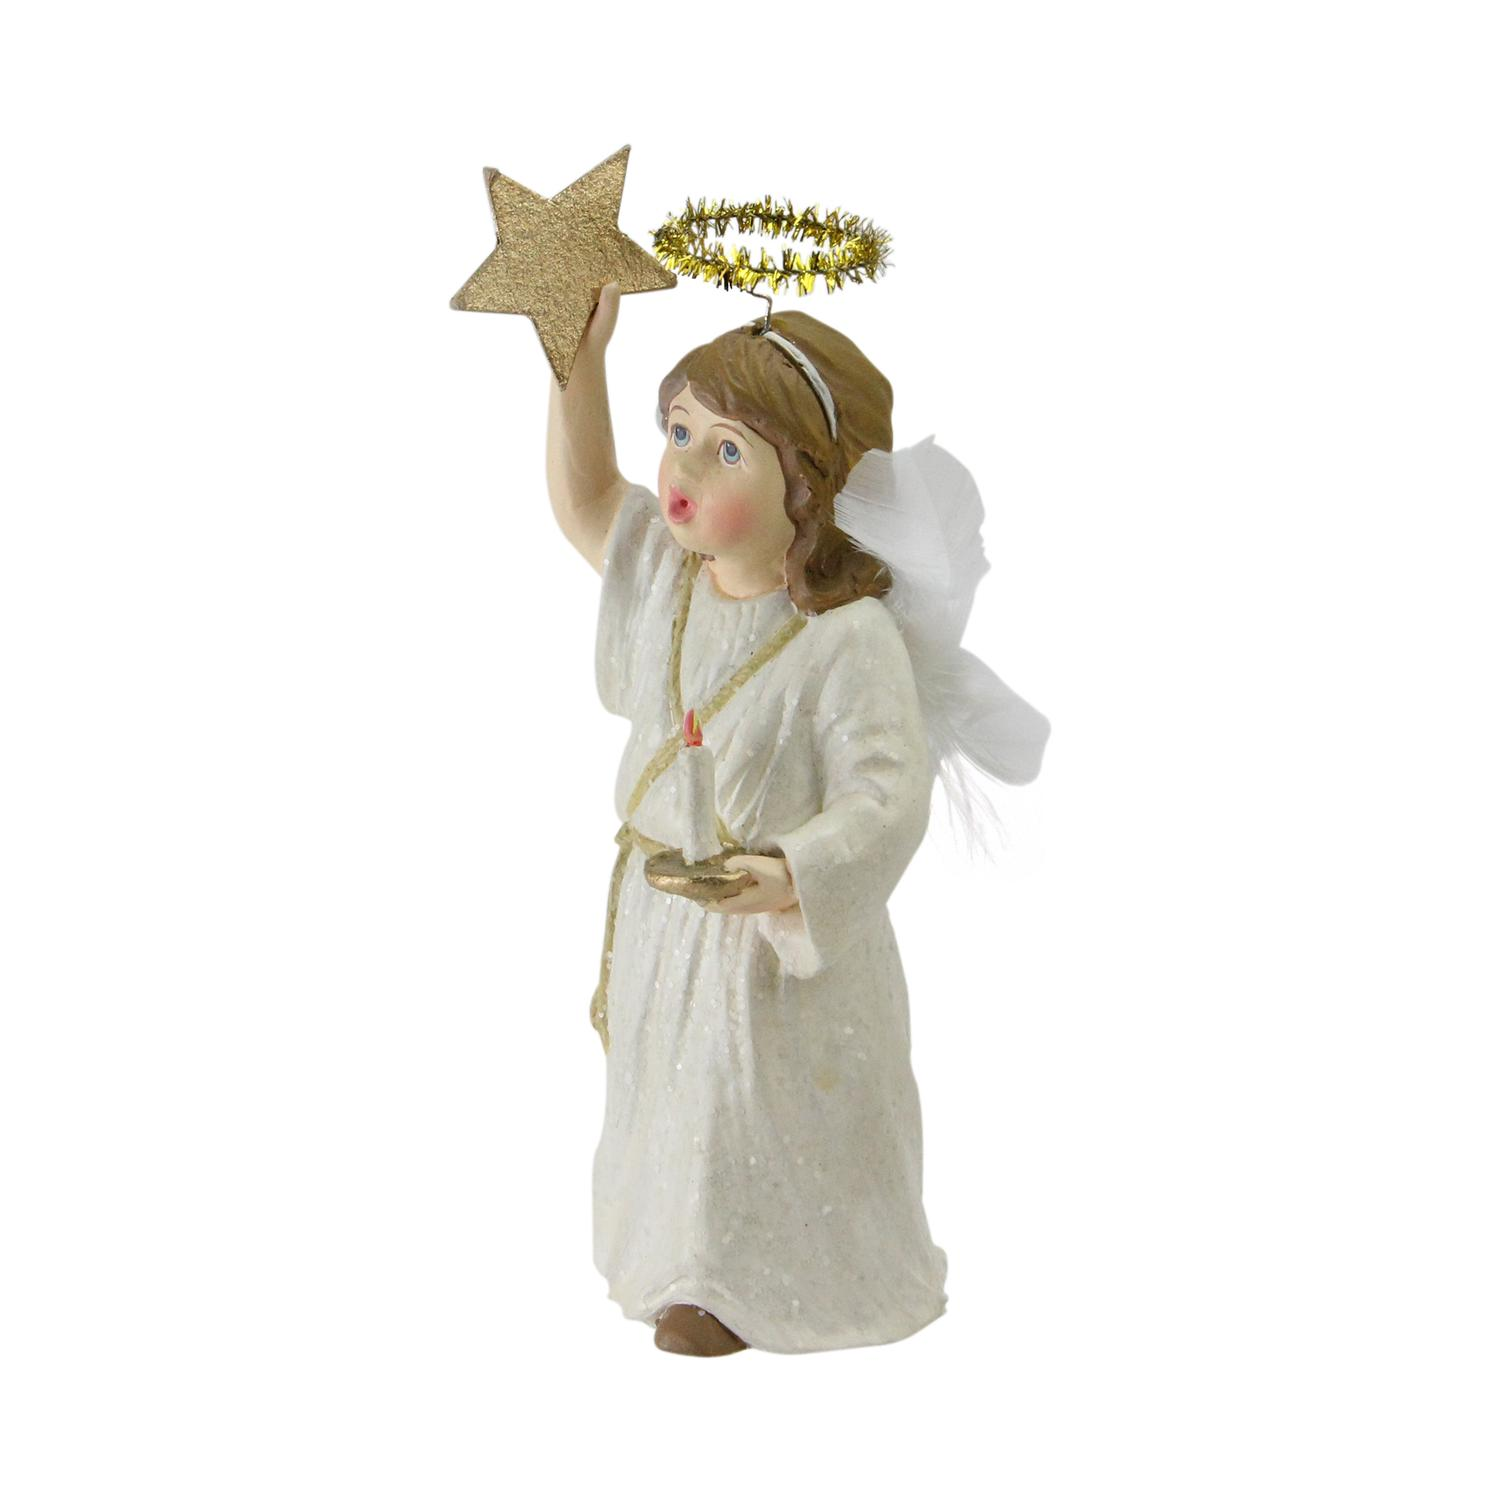 "6"" Glittered Caroling Angel with Tinsel Halo Christmas Figurine Decoration - image 1 of 1"